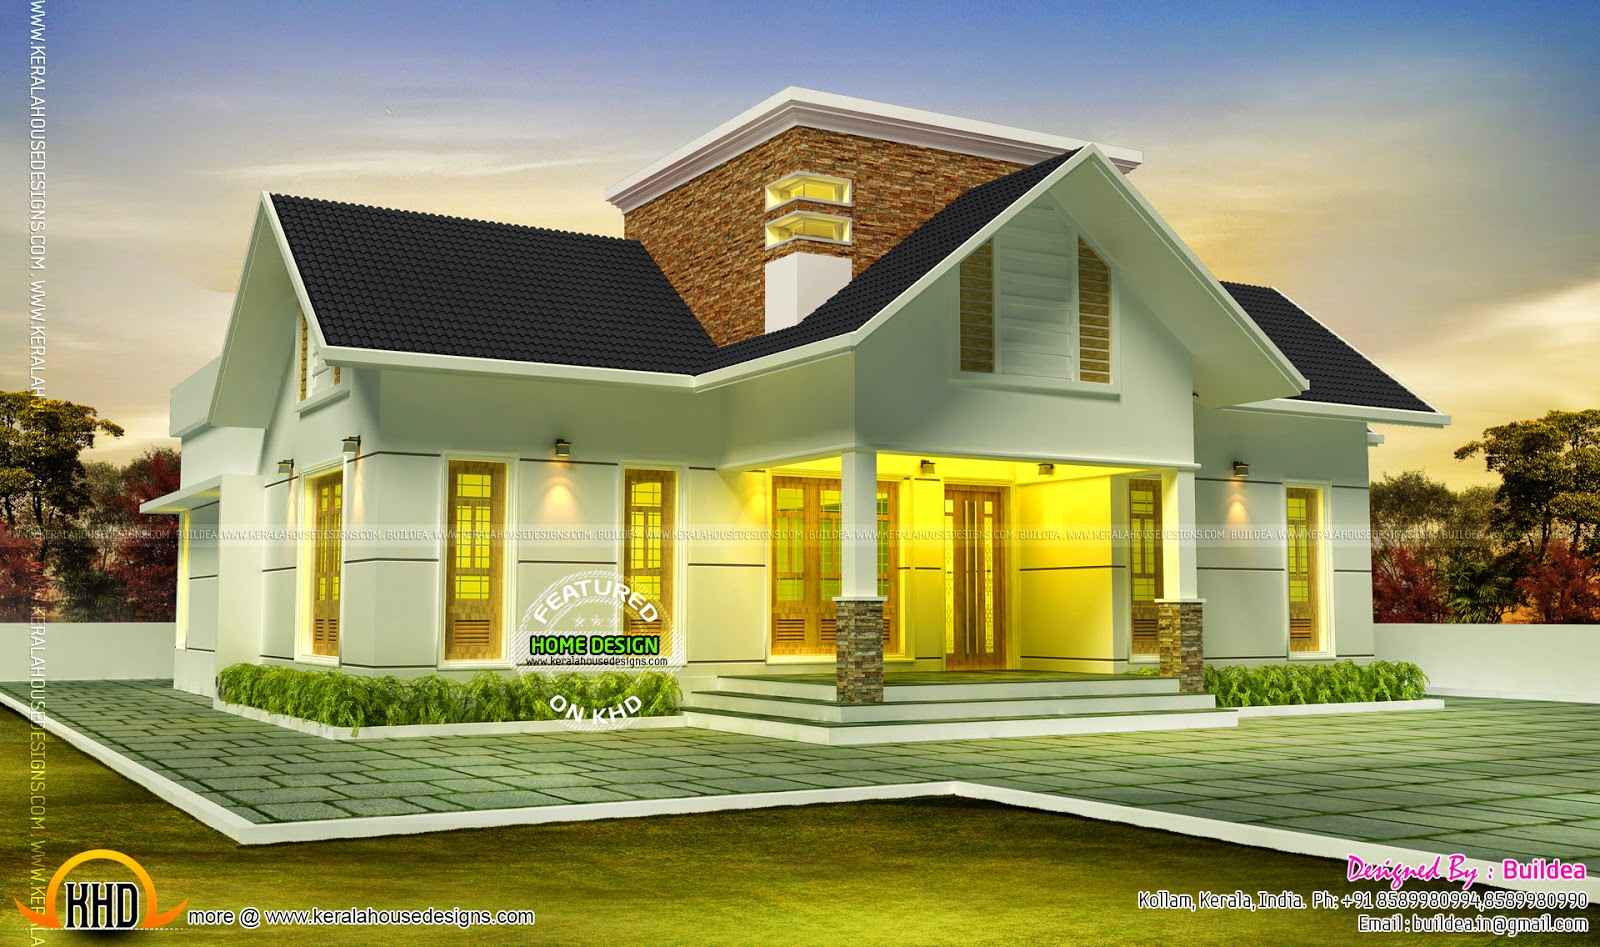 Very beautiful house kerala home design and floor plans for Home beautiful images